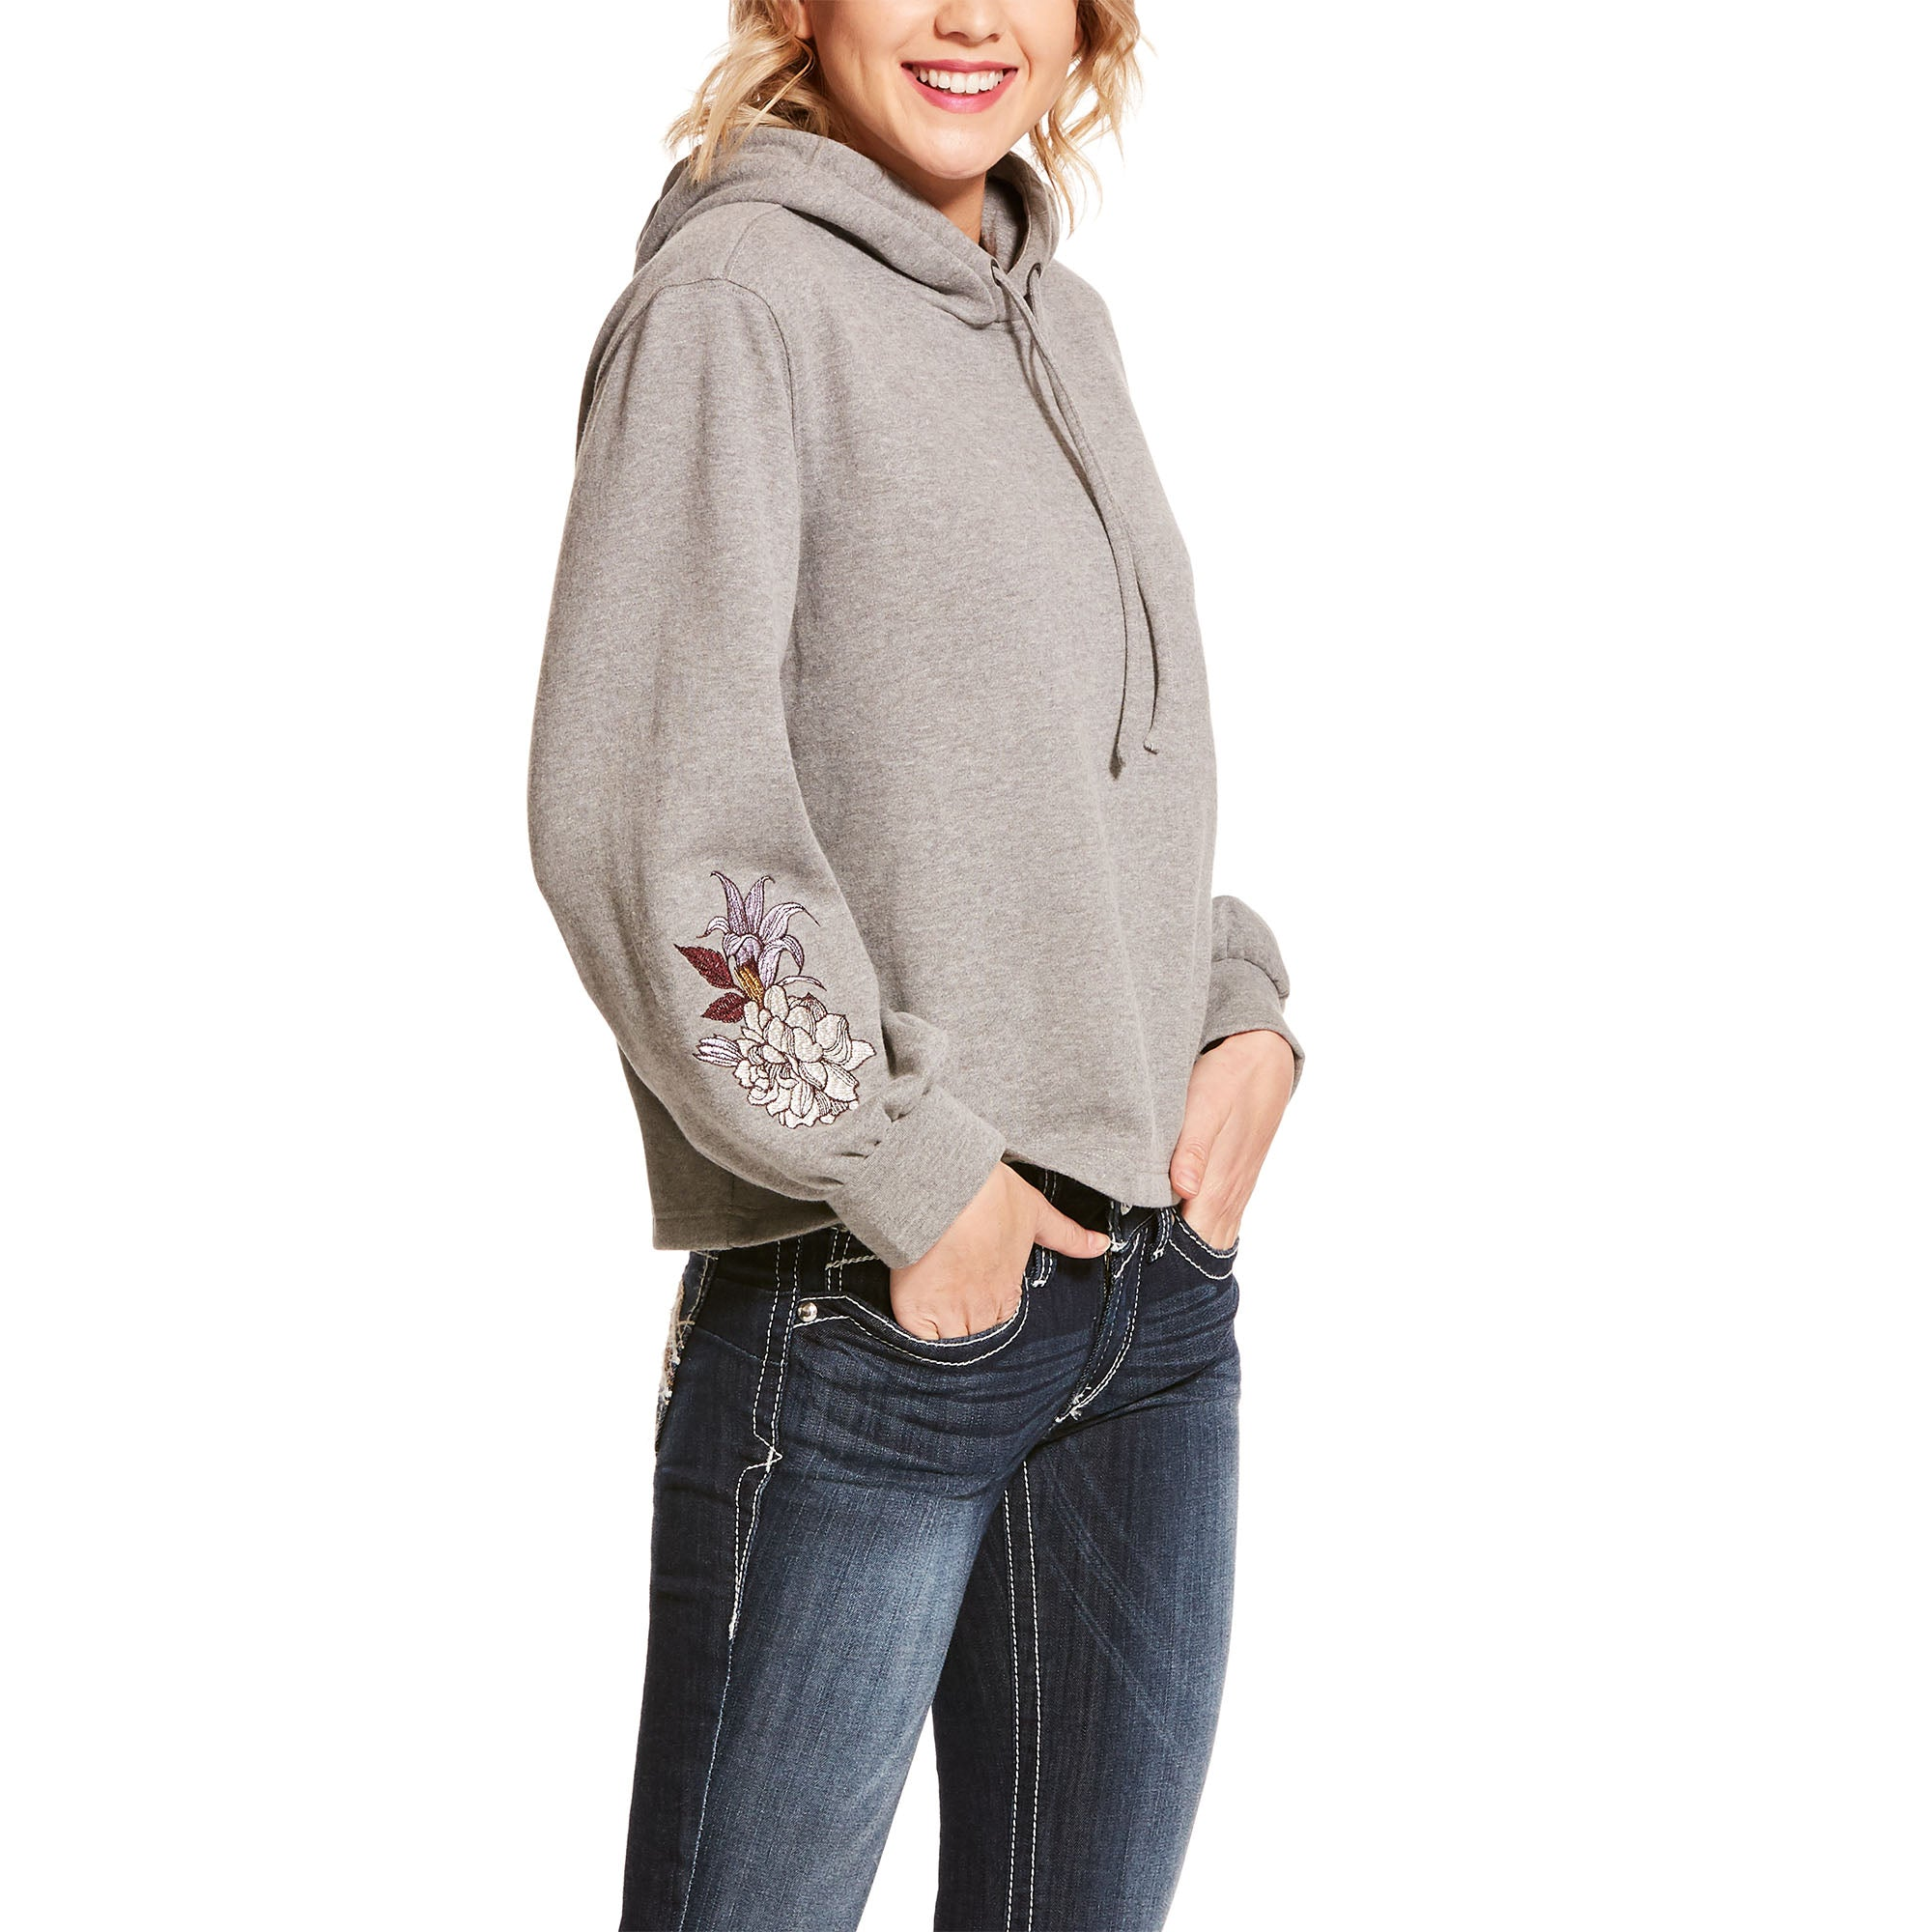 Full House Hooded Sweatshirt